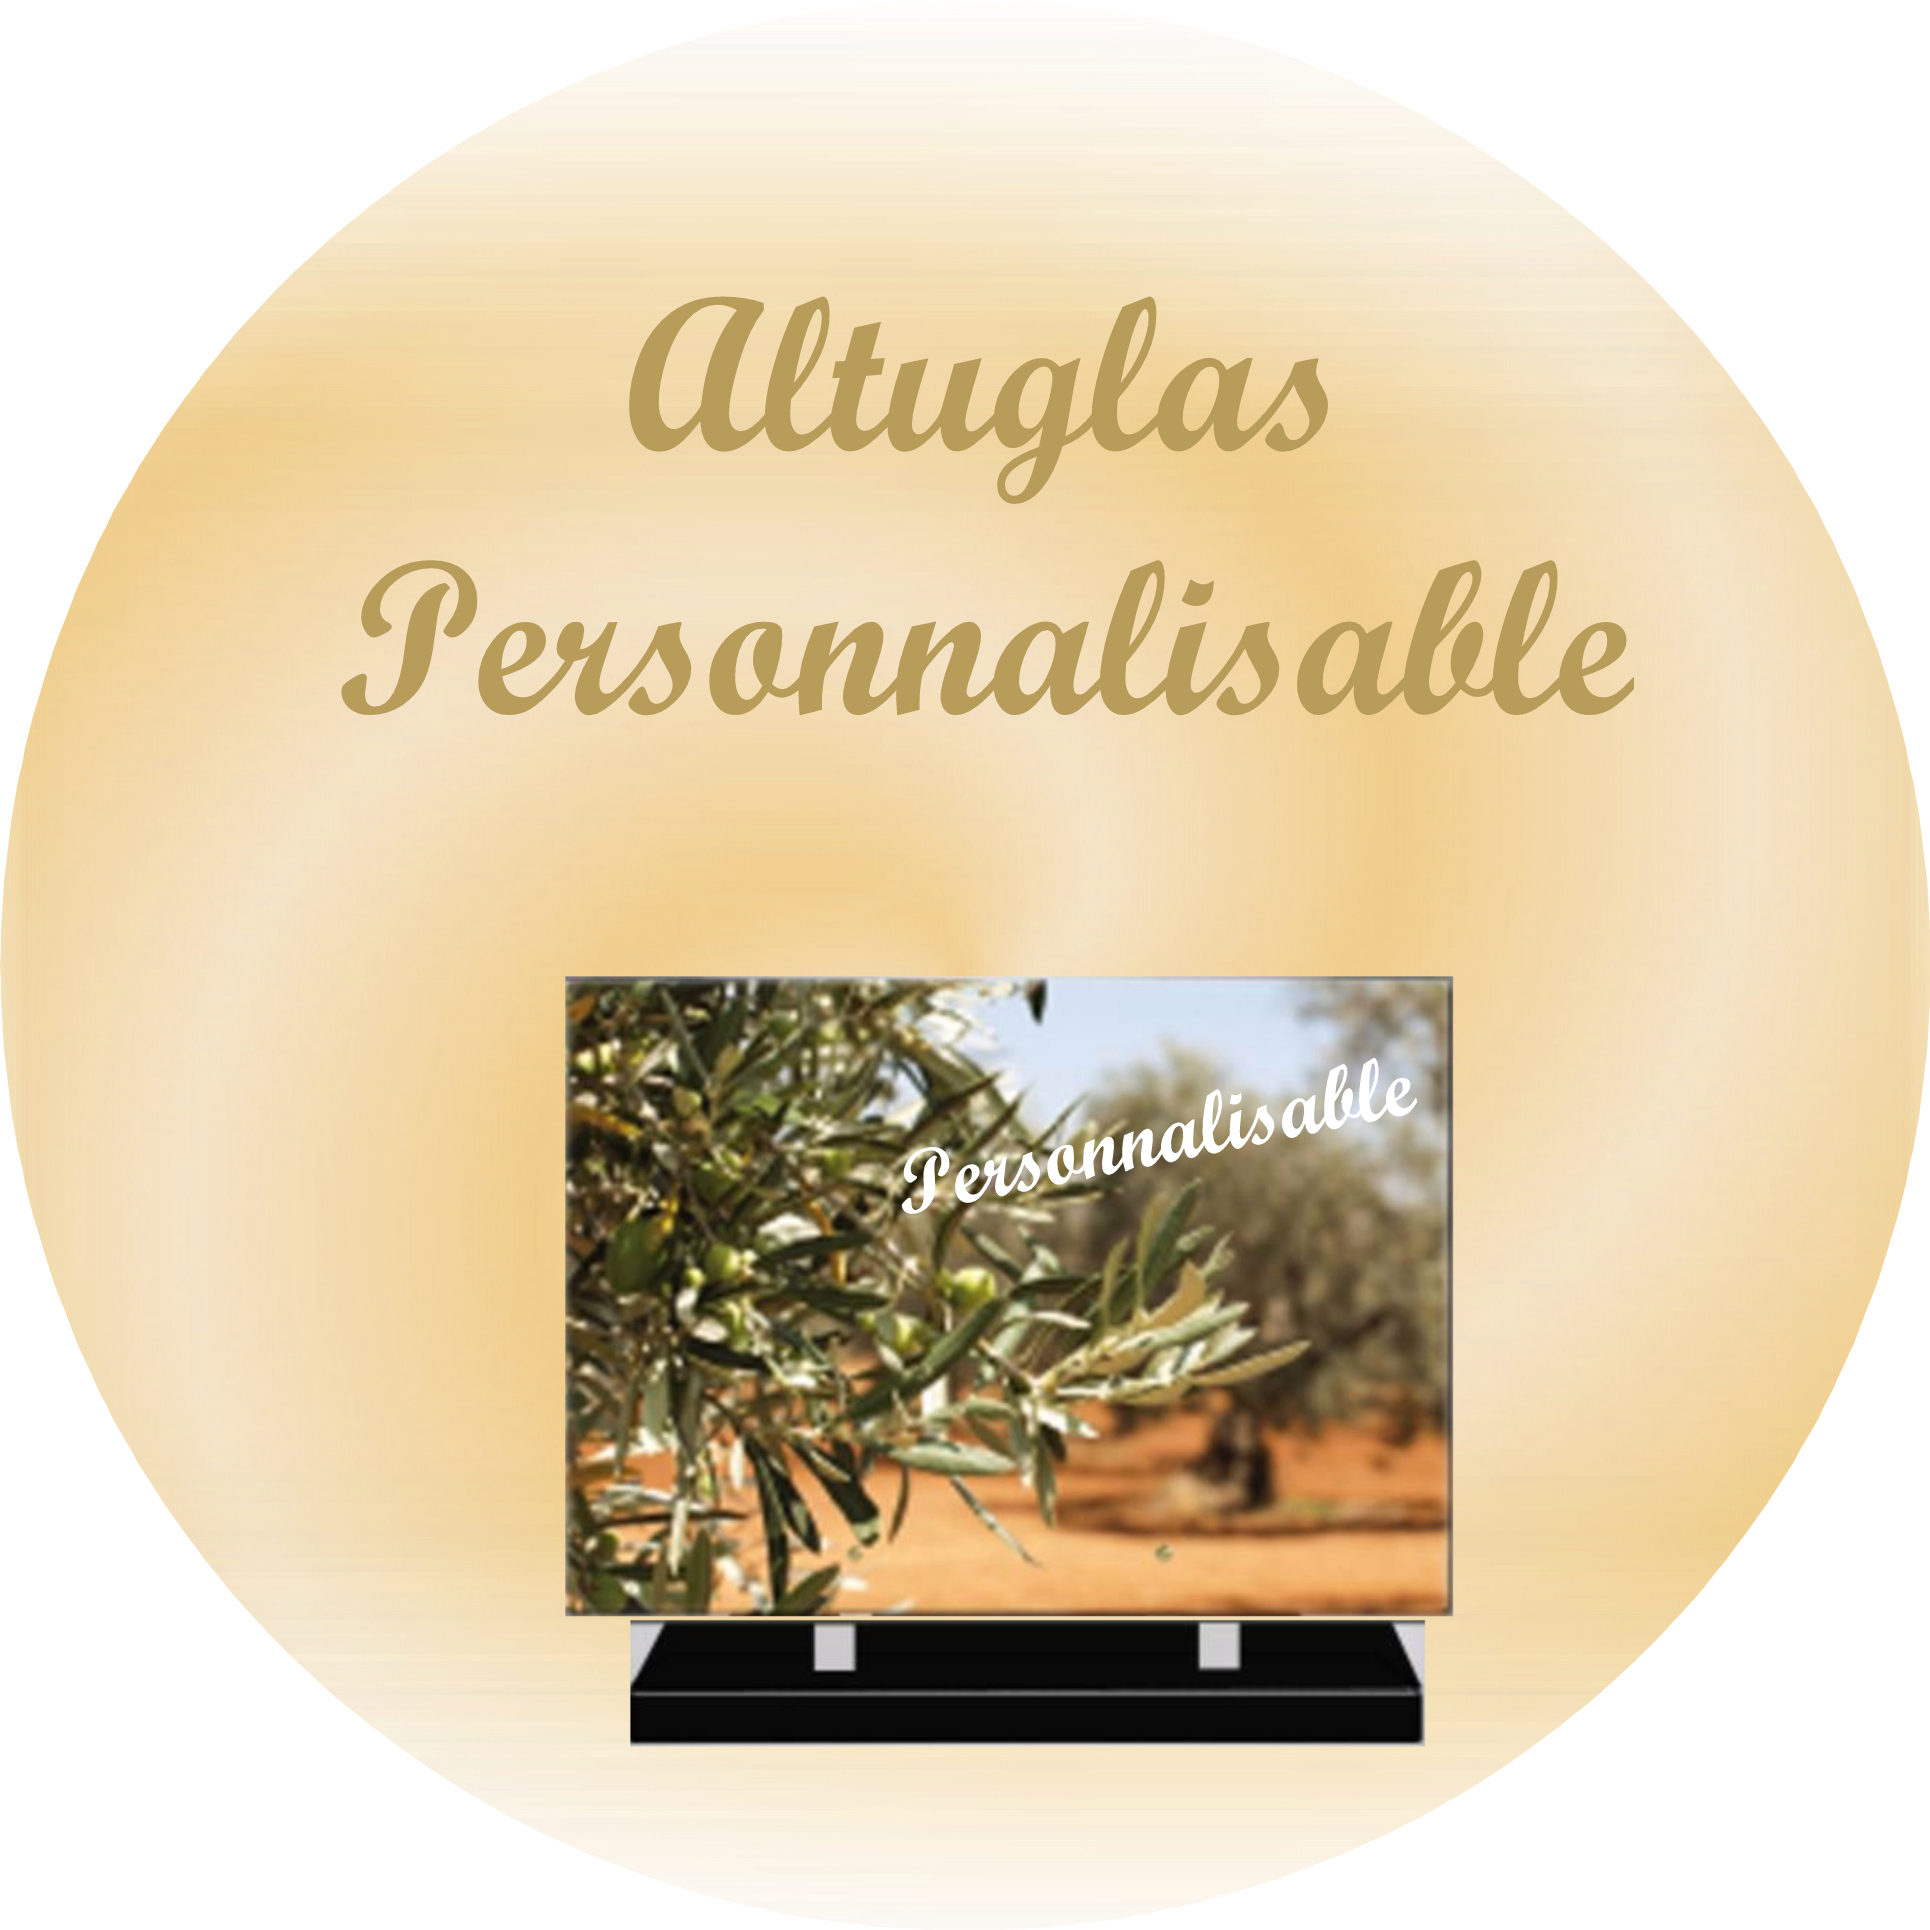 PLAQUES FUNERAIRES MODERNES PERSONNALISABLES RECTANGLE CHAMPDOR